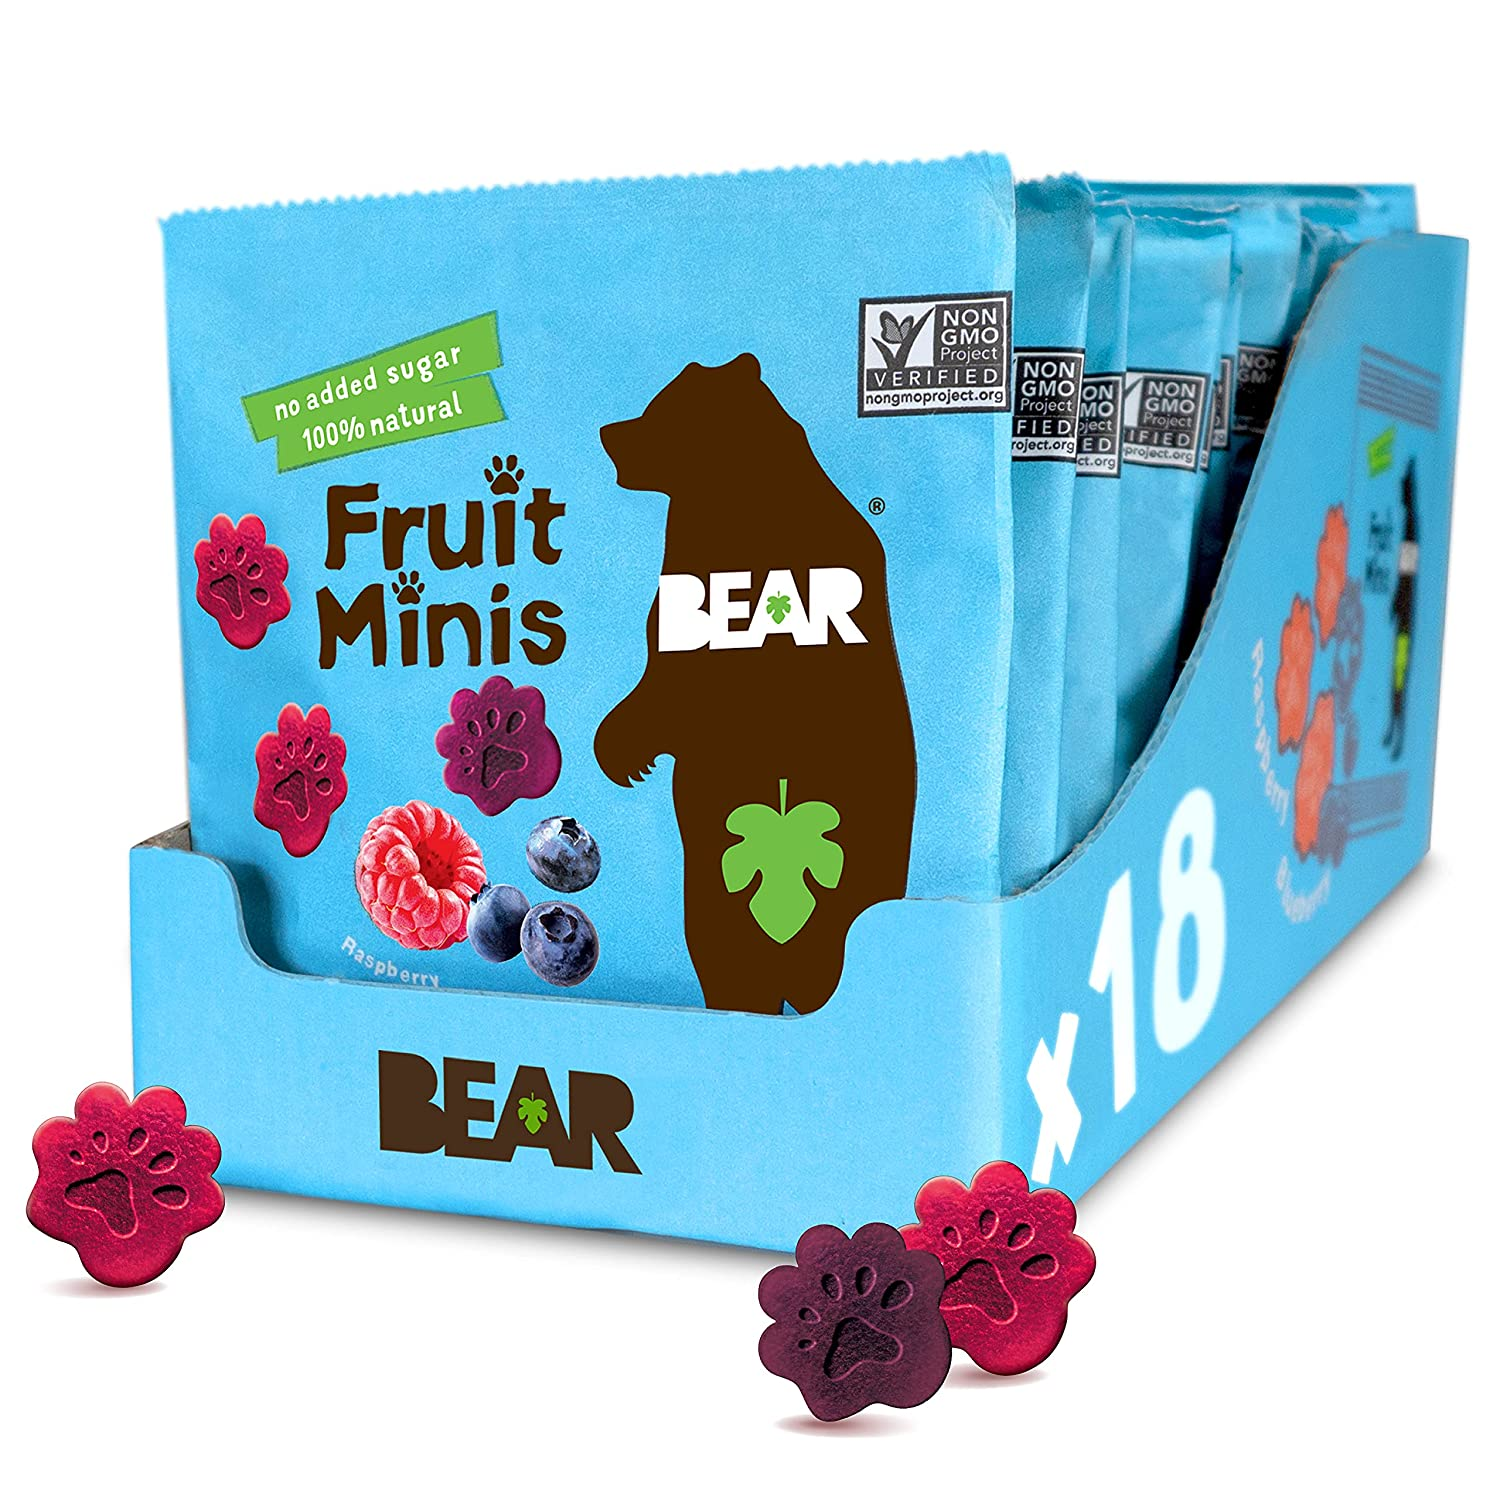 Recommended BEAR Fruit Minis Raspberry Blueberry Pack 0.7oz 18Count Large-scale sale X18